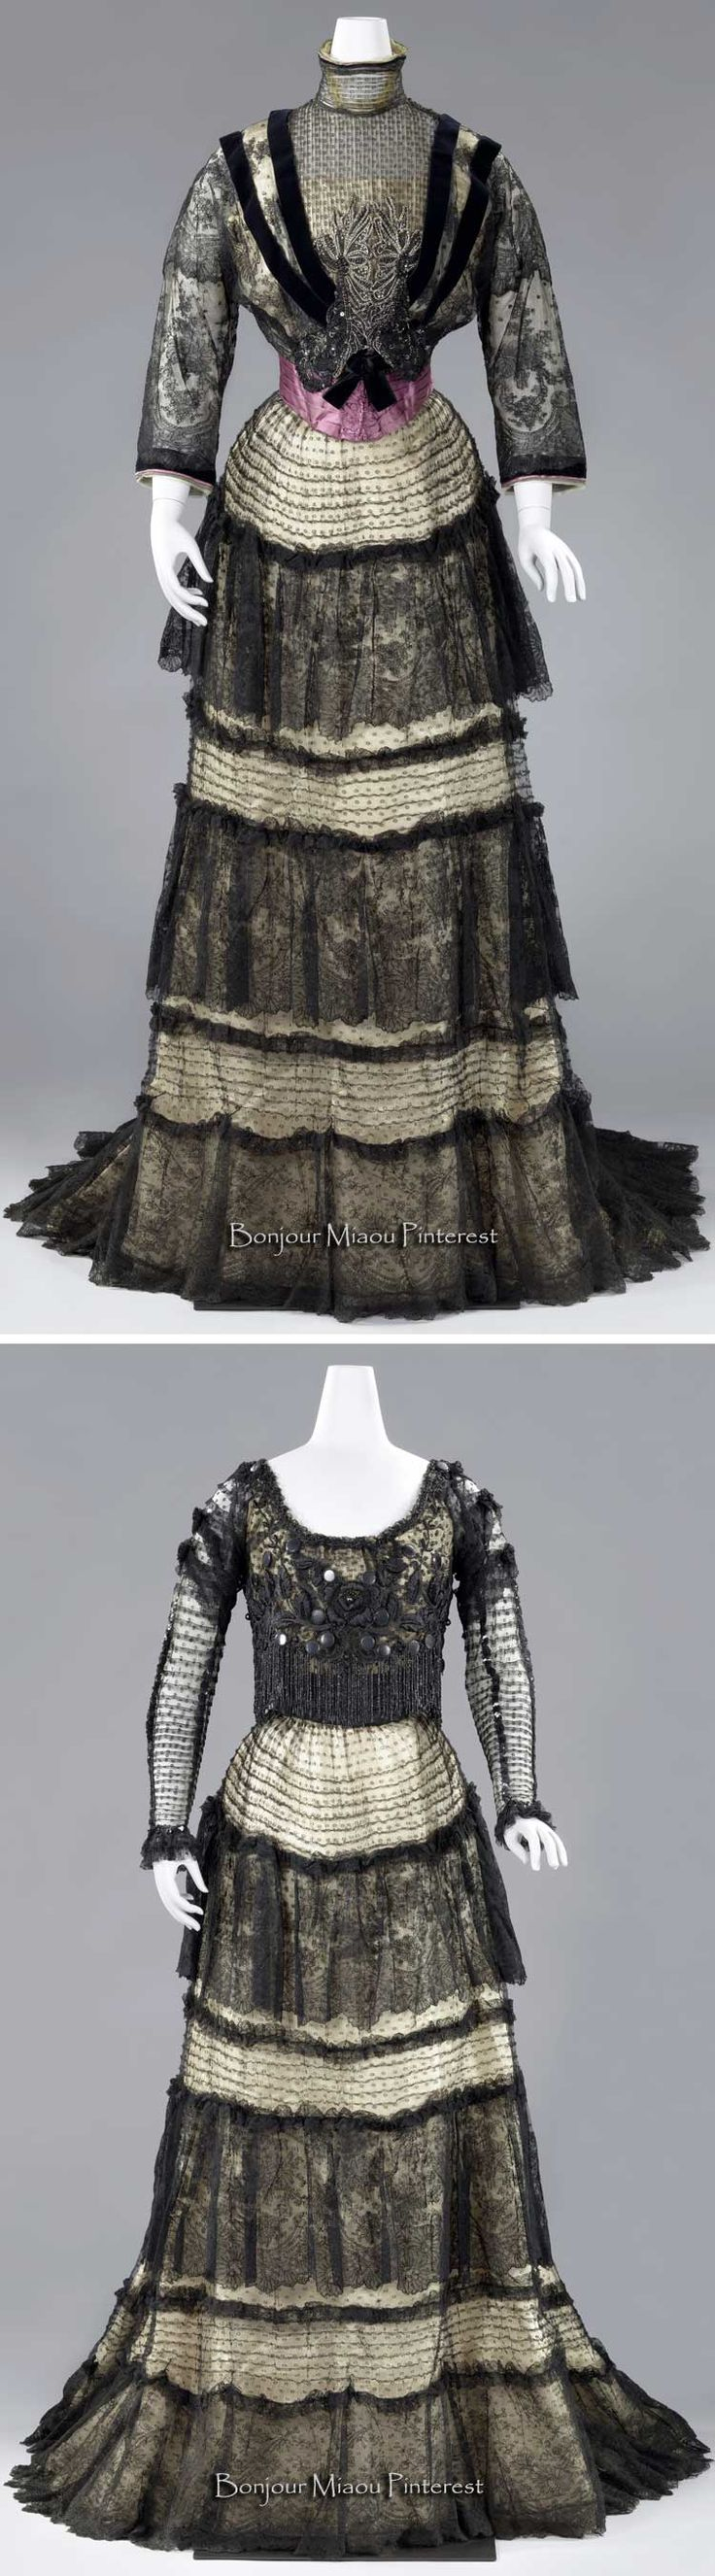 Dress with afternoon and evening bodices, Lucien Andrain, Paris, ca. 1903–06. Black lace on cream satin. Afternoon bodice trimmed with black velvet ribbon, silver bullion, and sequins, and has pleated purple silk cummerbund. Rijksmuseum